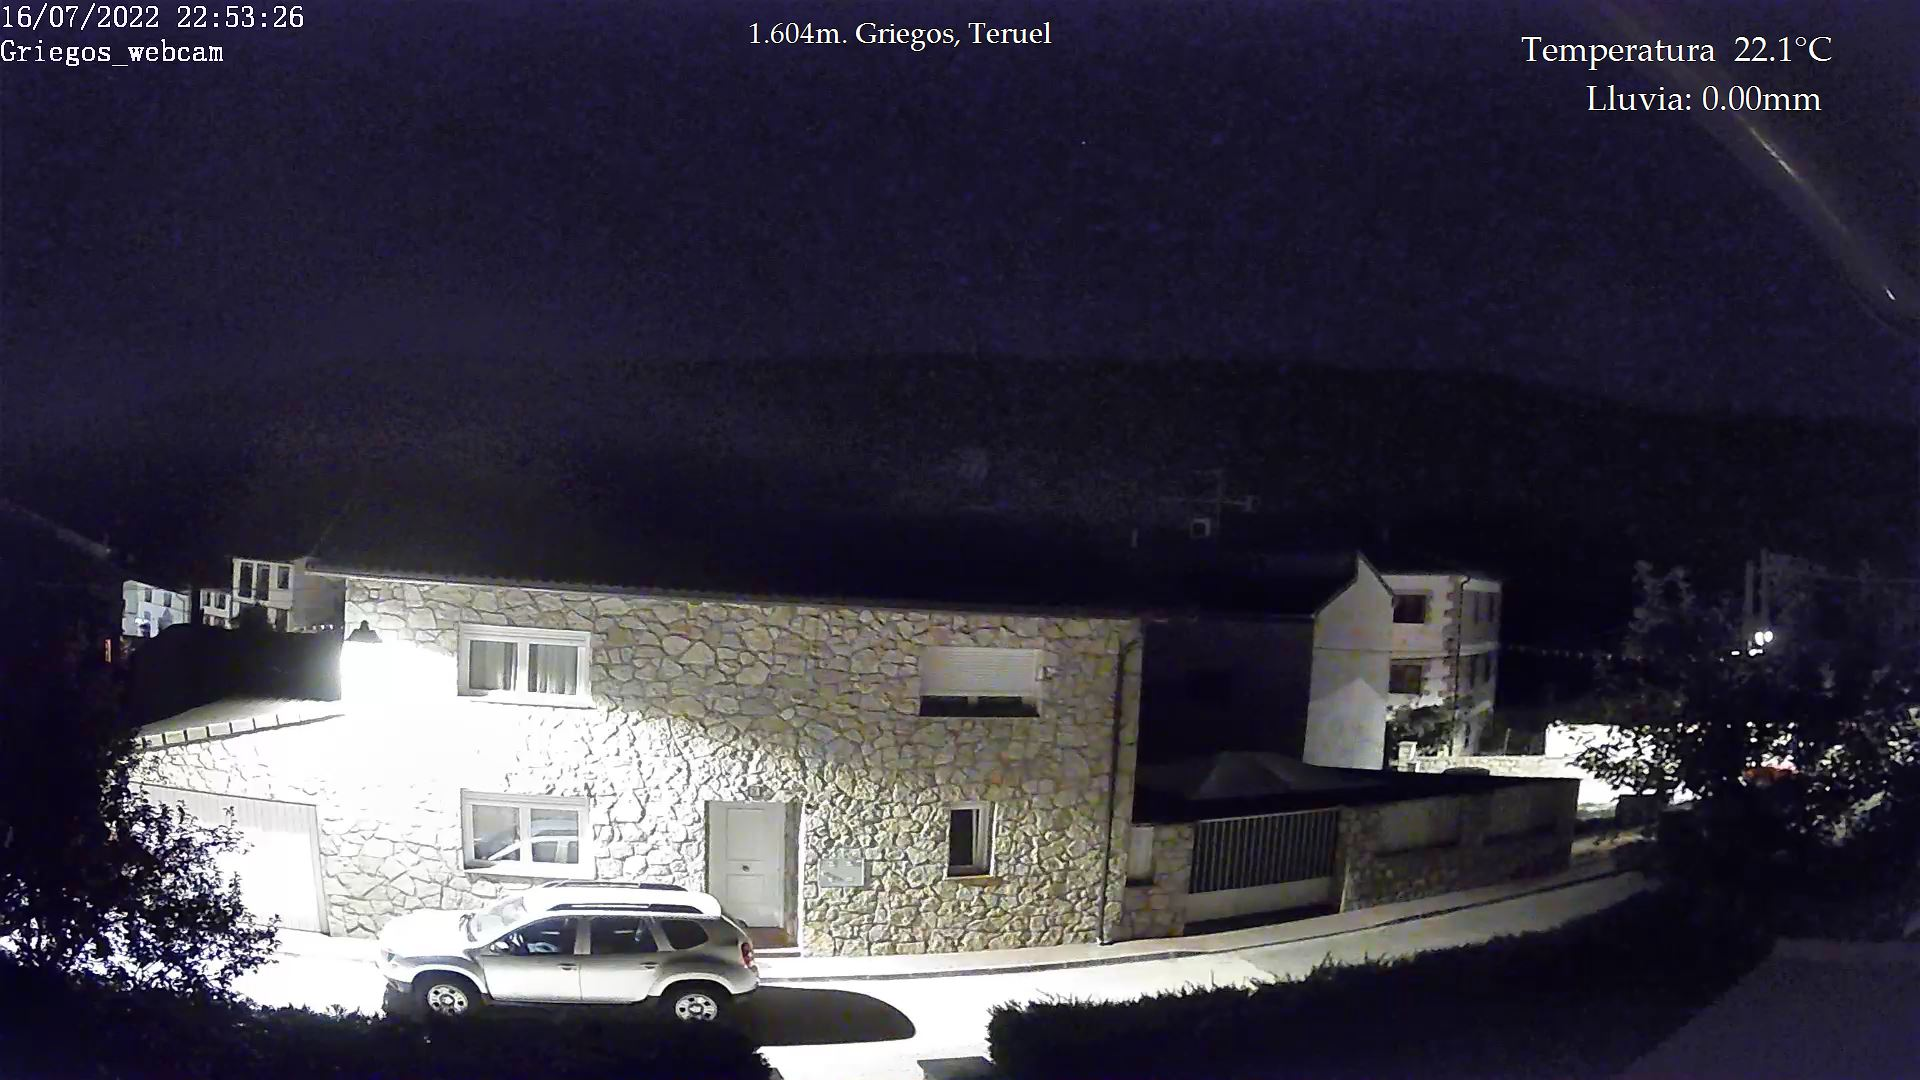 Webcam de Griegos